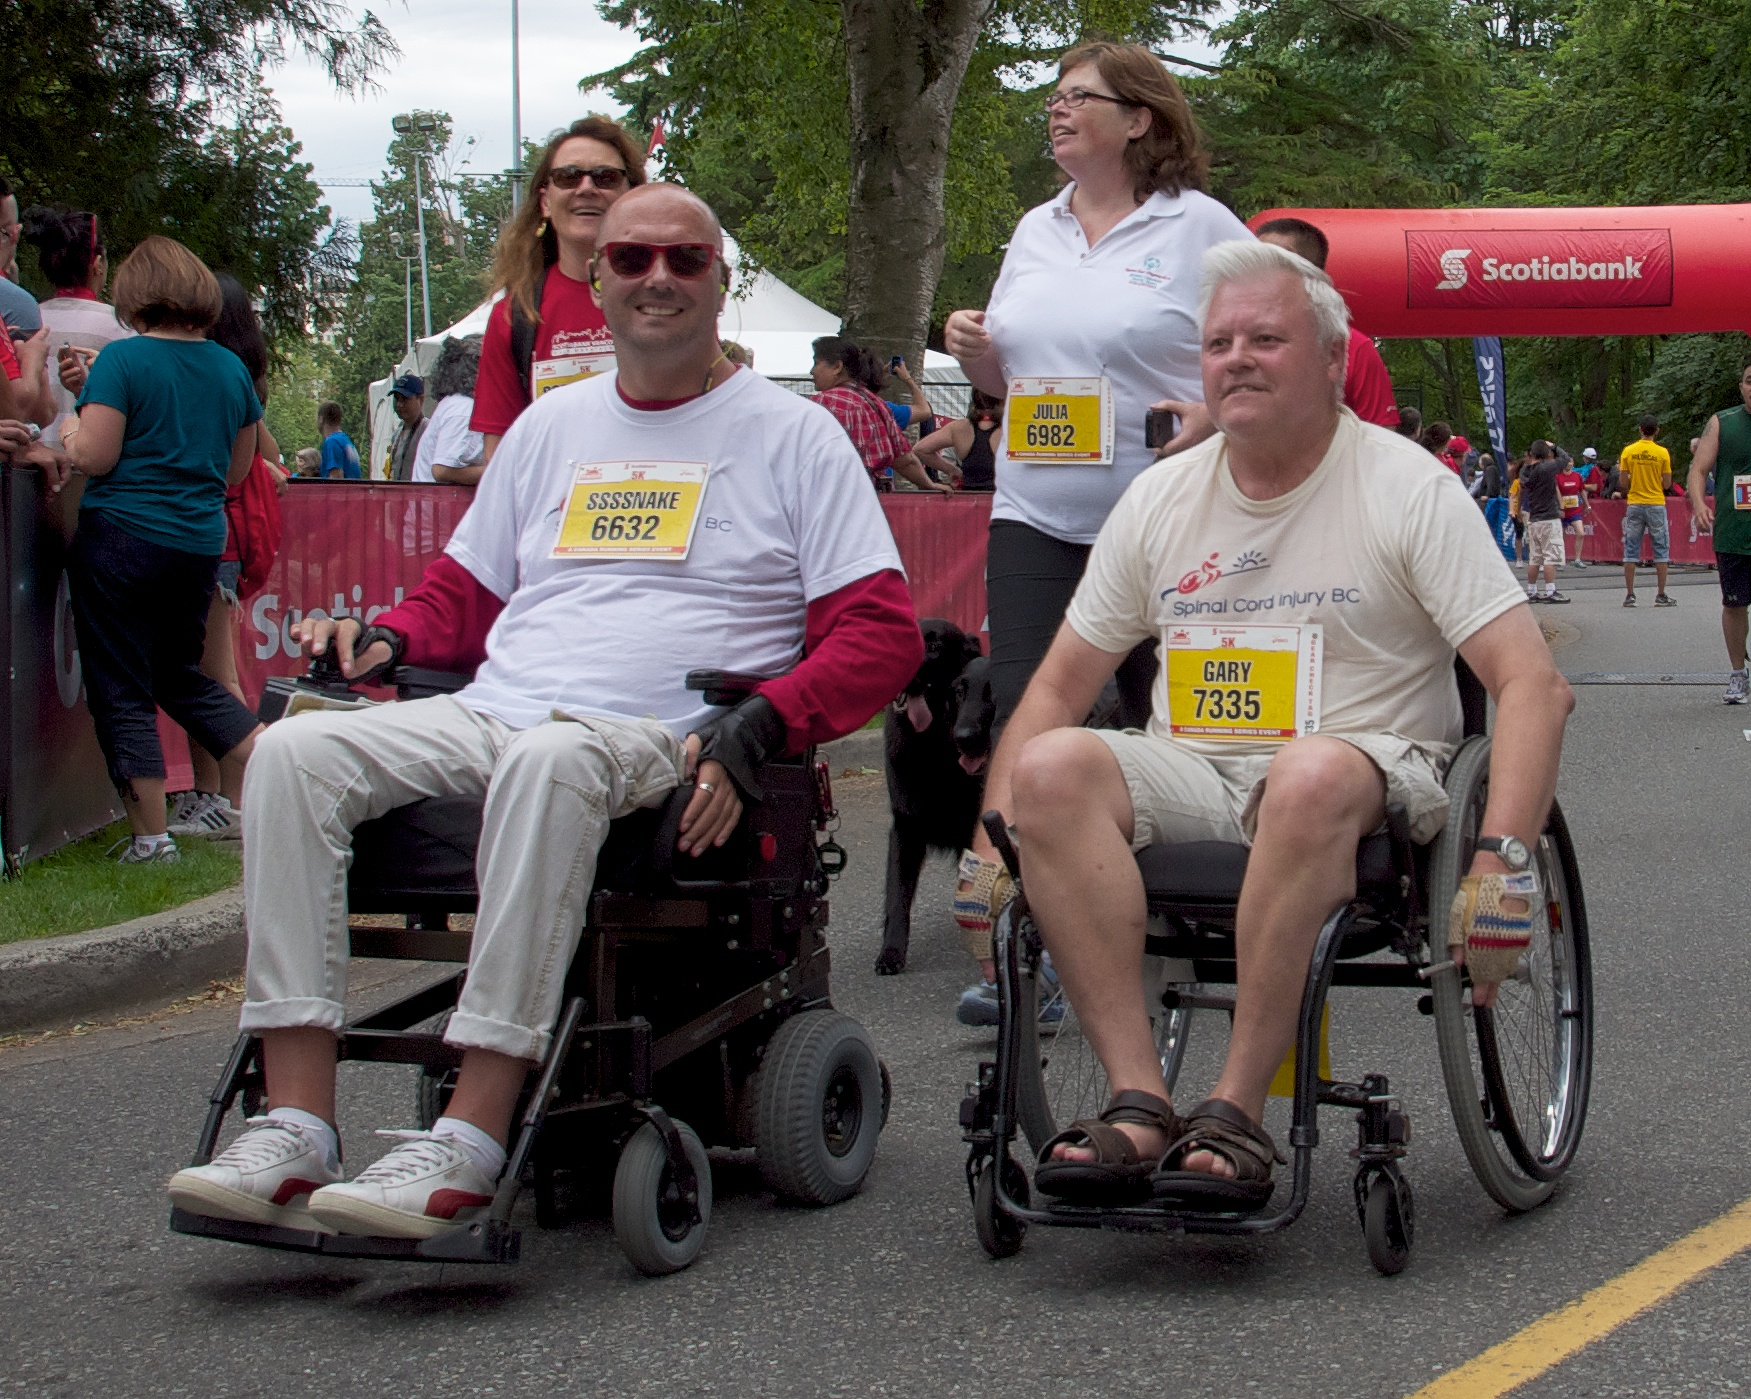 Brad racing beside a friend in the Scotiabank Charity Run